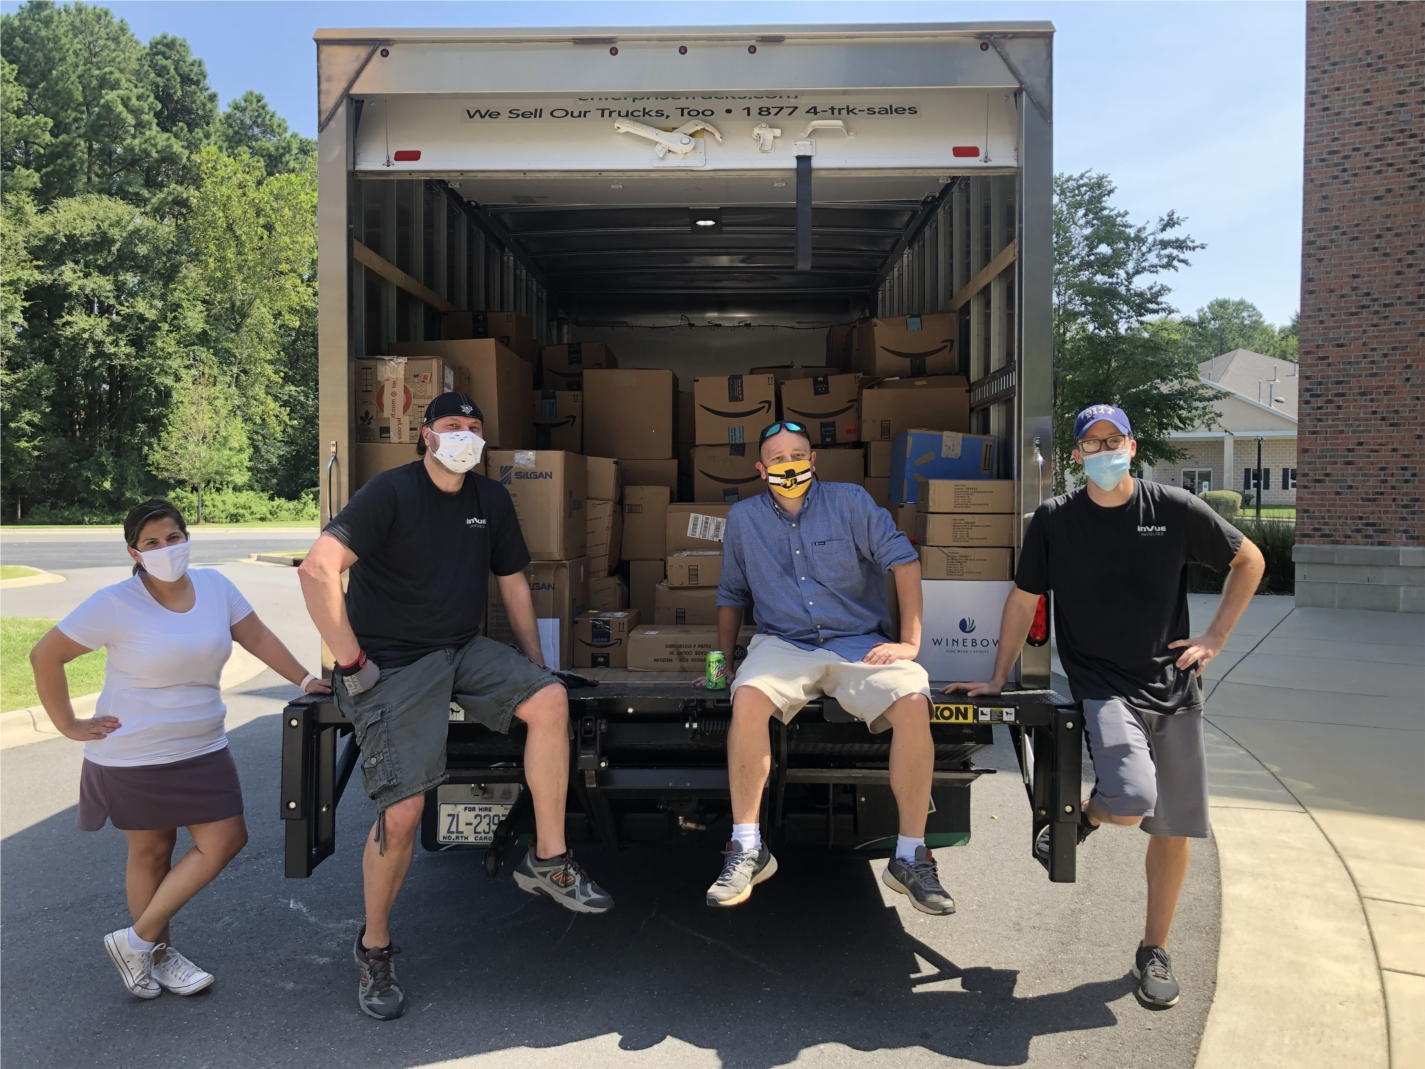 InVue received the Valedictorian Award from Classroom Central in the Annual Back to School Drive.  We were #1 in the Traditional Supply Drive, Surpassed the Fundraising Goal, and tripled last year's support!!  This year we raised 118,226 items for the kids and teachers in the Charlotte area.